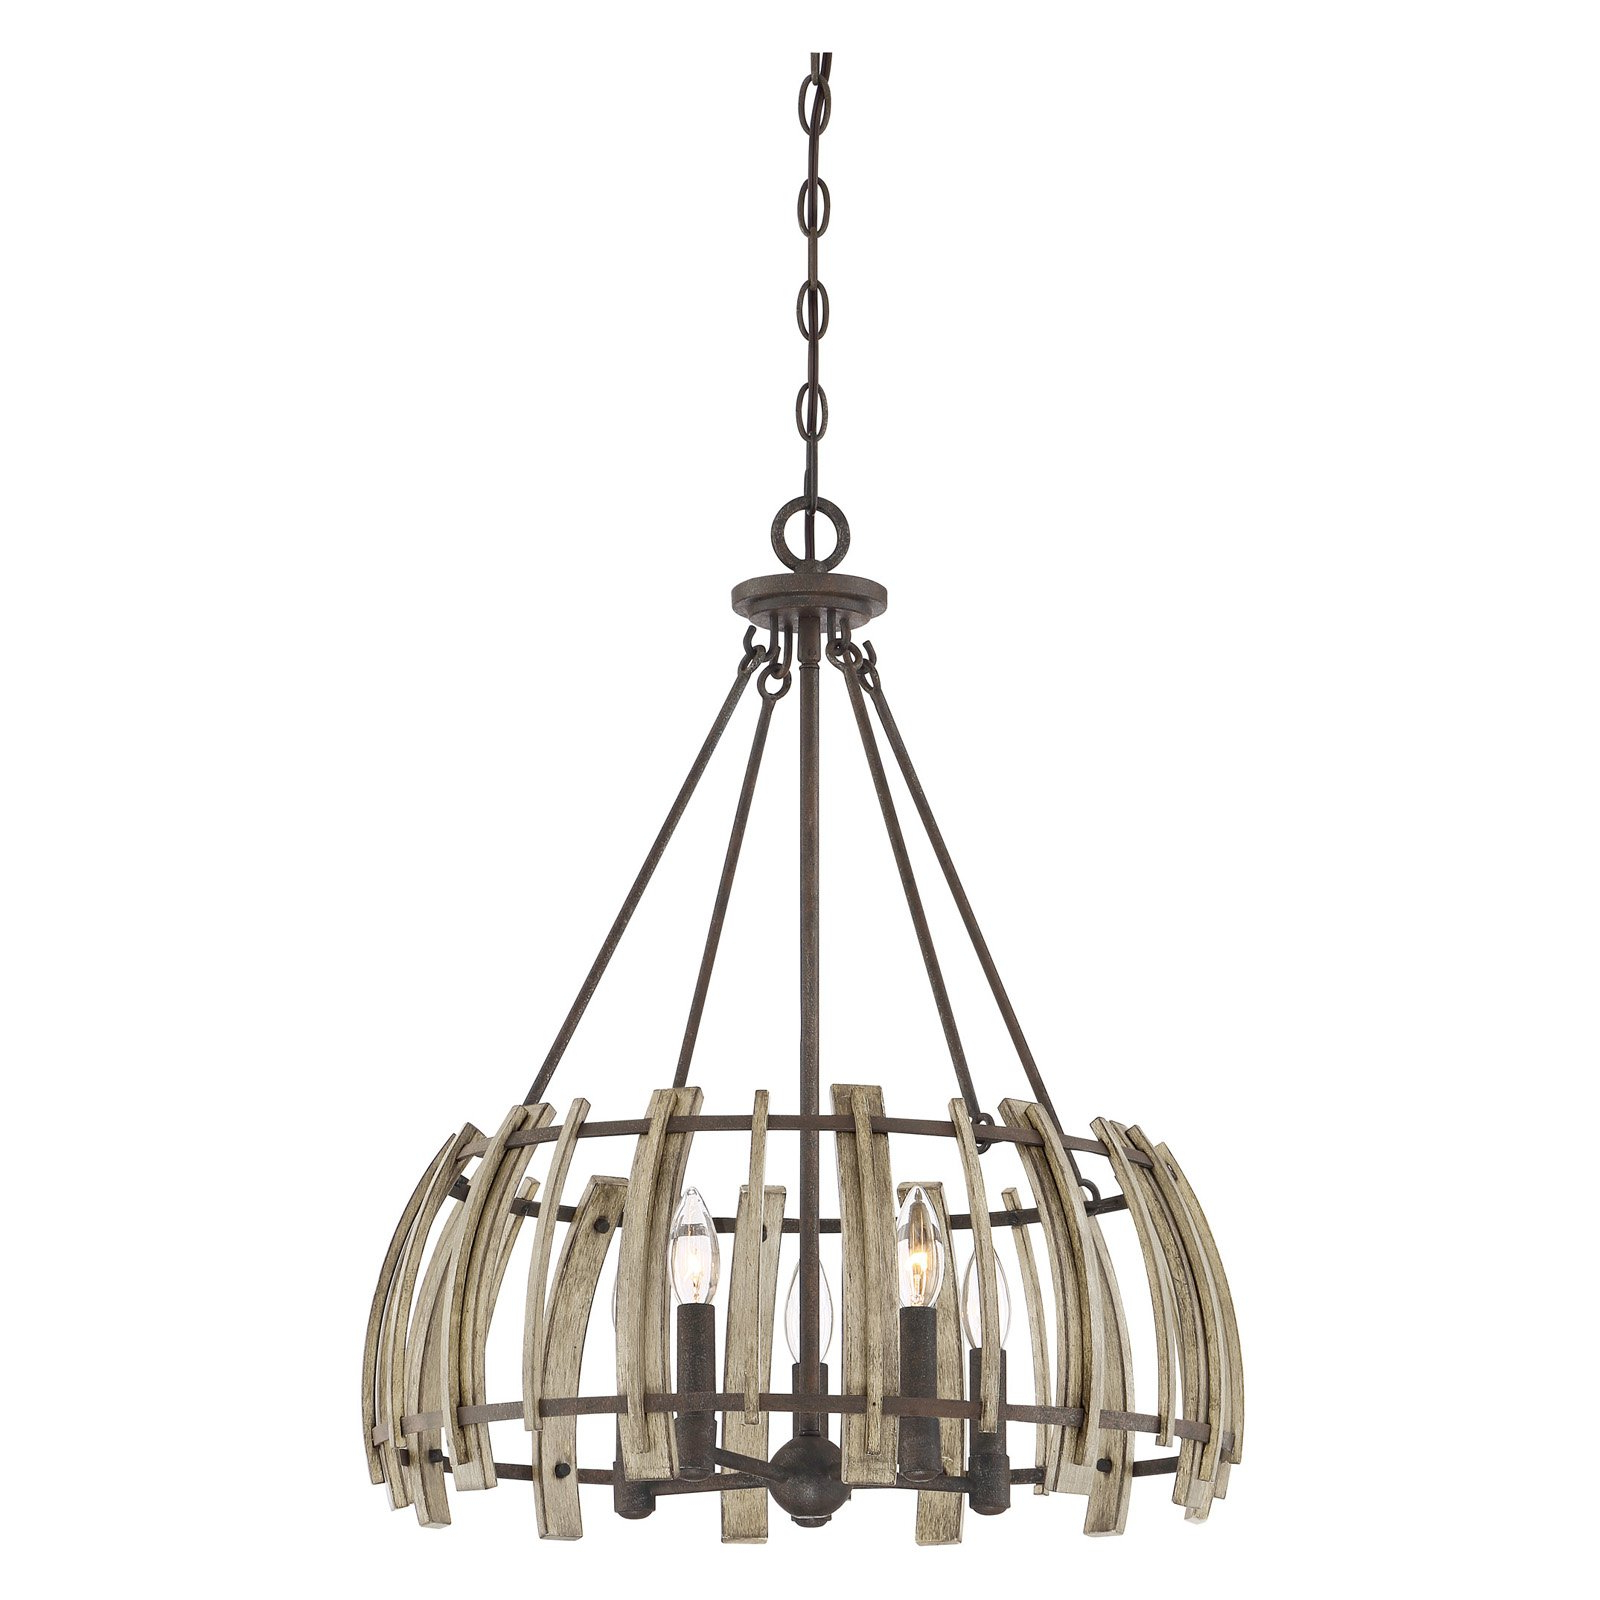 Quoizel Wood Hollow Whl2821Rk Pendant Light (View 20 of 25)